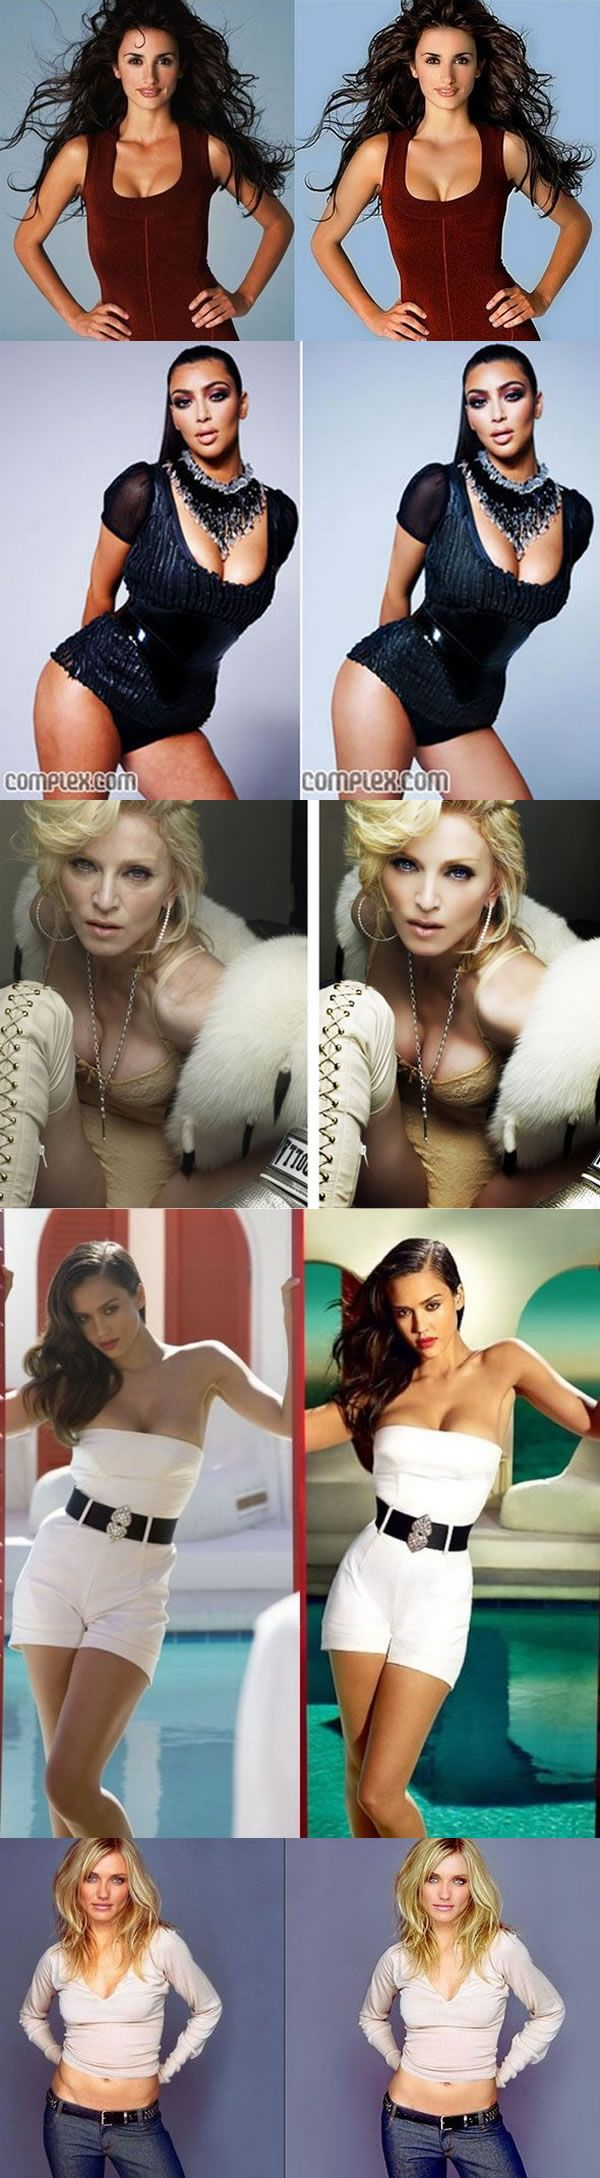 Celebrities before and after photoshop. Nobody's real anymore. Makes you feel a lot better! Haha